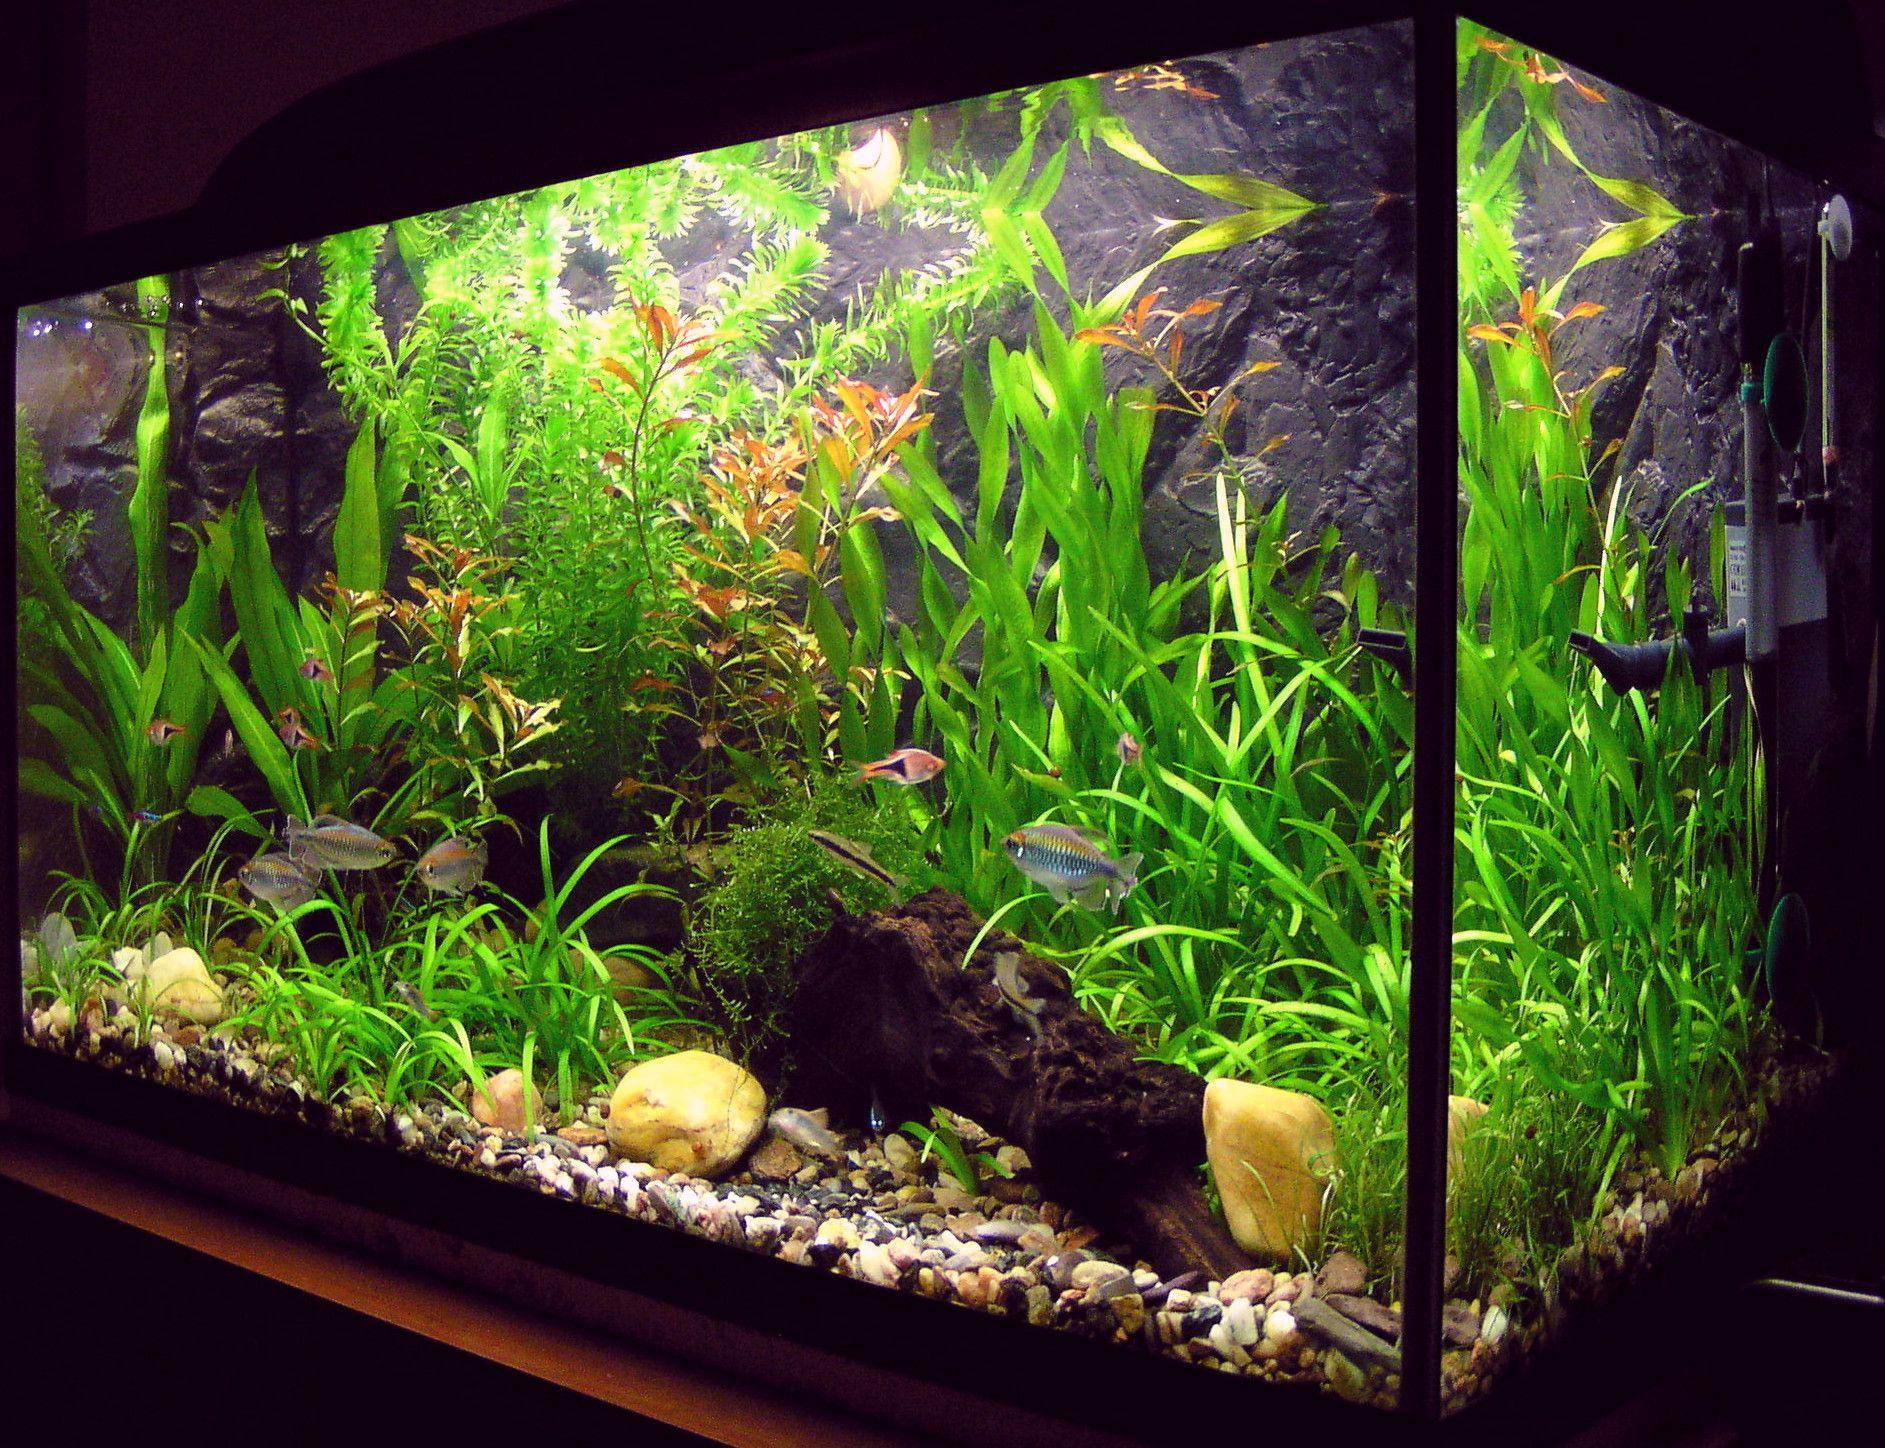 Freshwater aquarium fish photos - Beautiful Freshwater Aquarium More